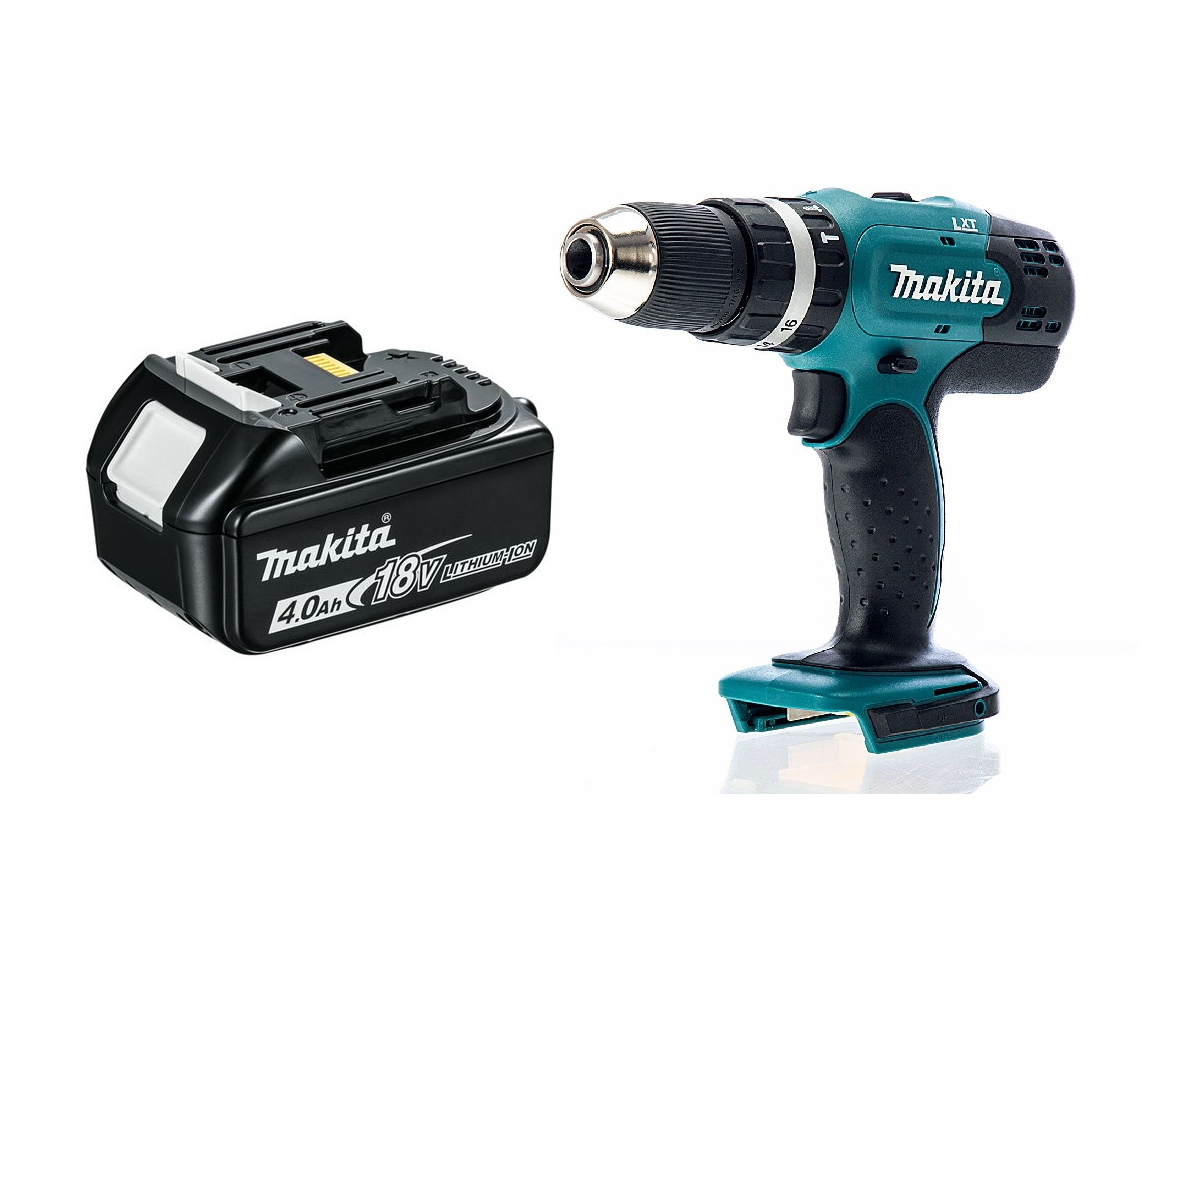 Prime Combi Dhp453Z Makita Drill 18V Battery Ah 4 Bl1840 Only Andrewgaddart Wooden Chair Designs For Living Room Andrewgaddartcom